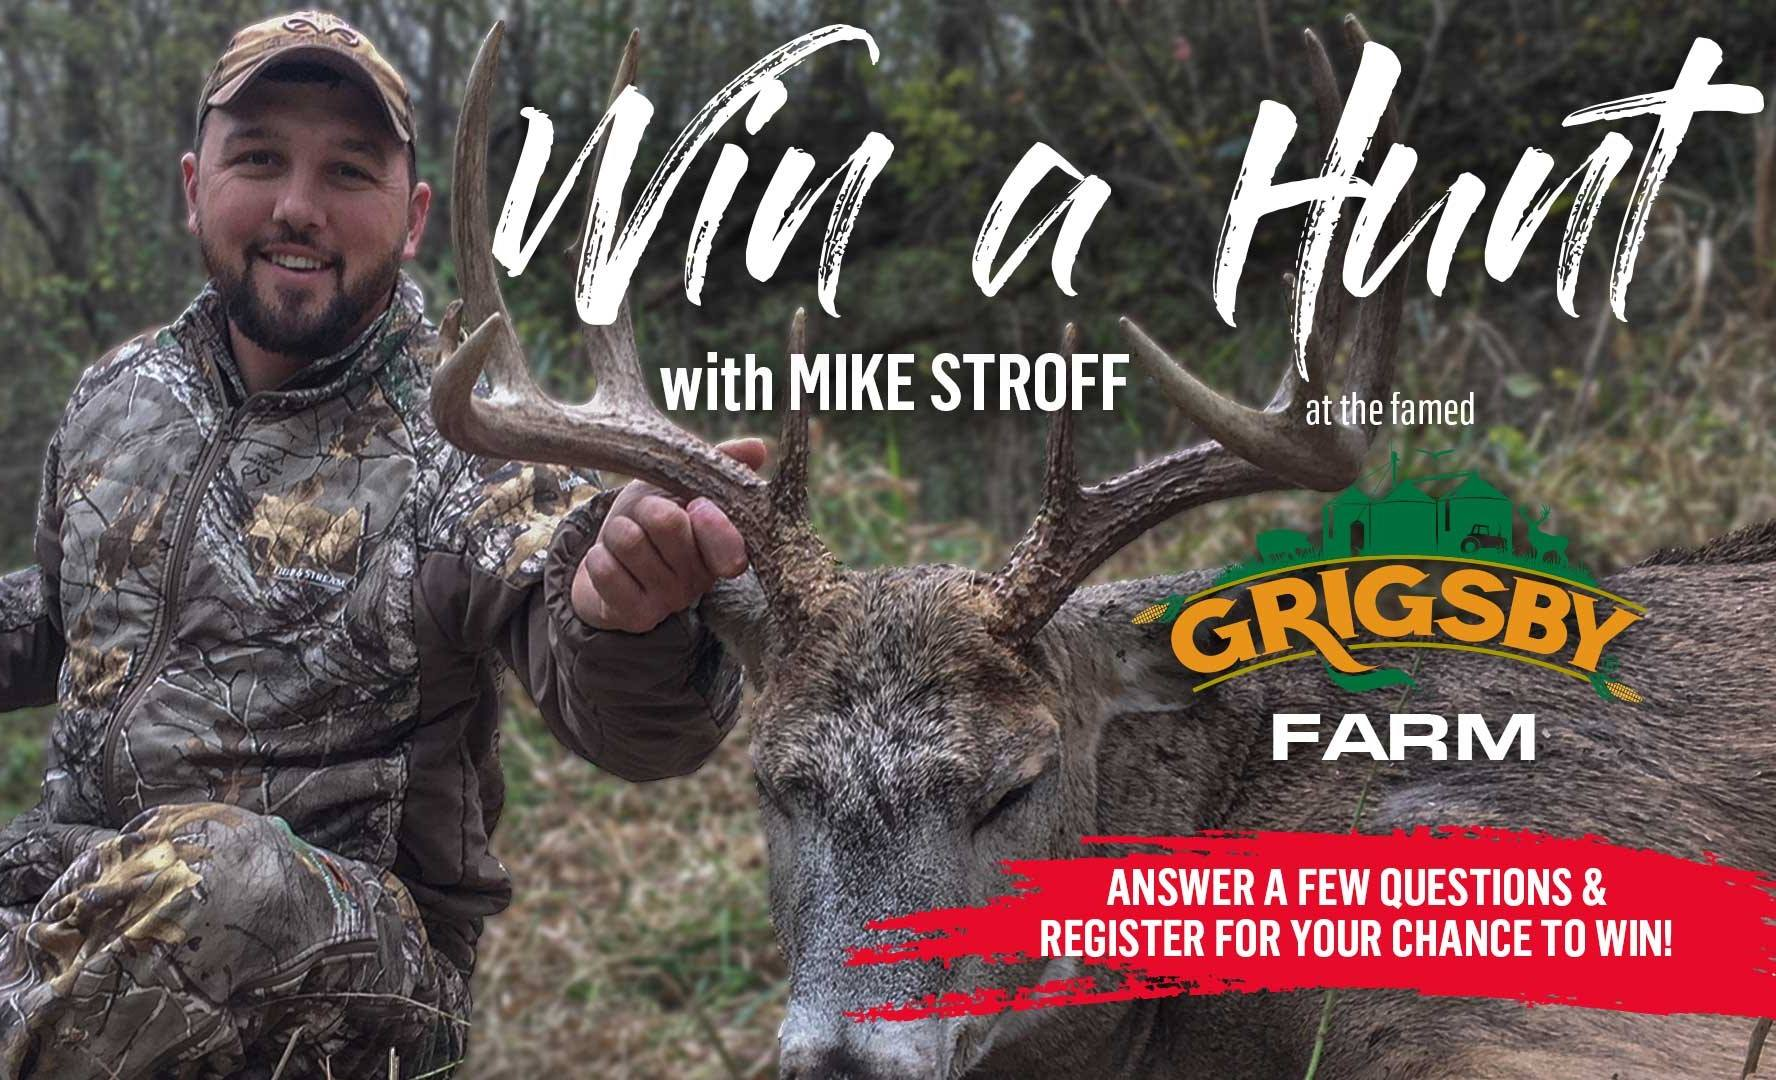 Enter for chance to win a White-tail hunt in Illinois at the famed Grigsby farm